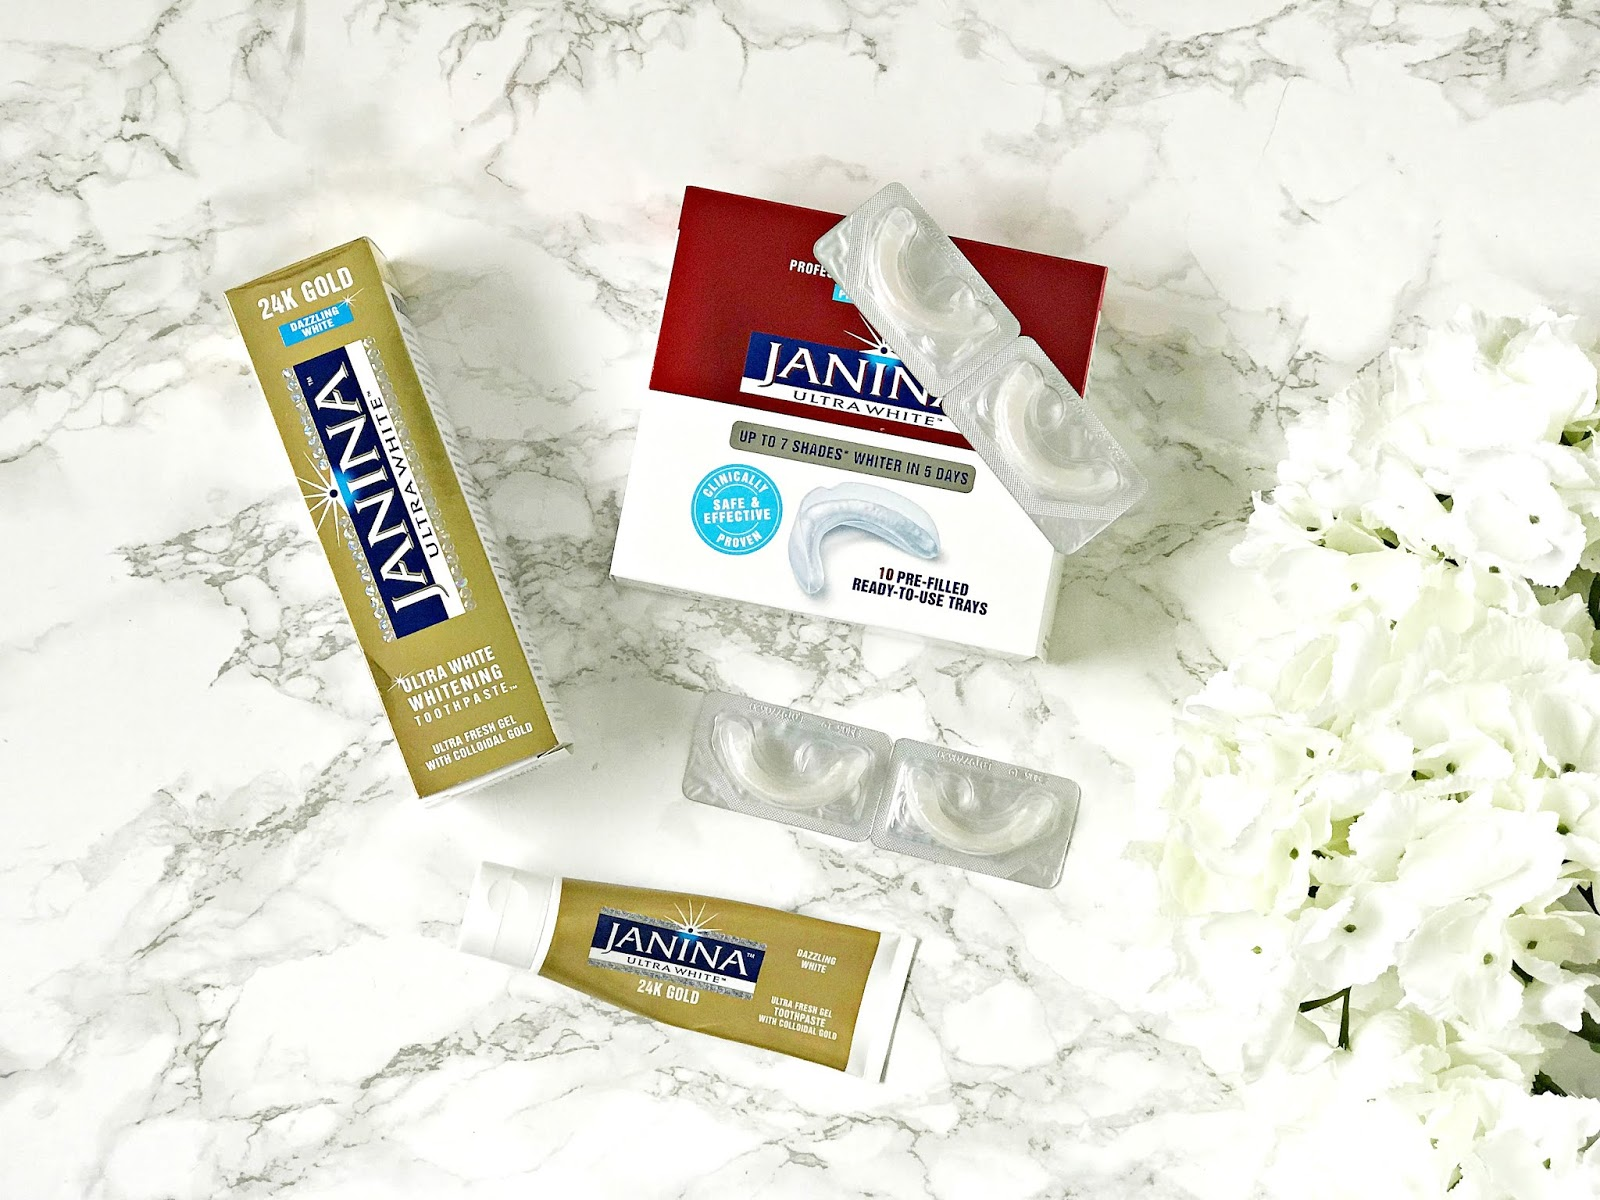 Janina, National Smile Month, 24K Gold Toothpaste, Maxiwhite Professtional Teeth Whitening Pre-Filled Trays, Teeth Whitening, review,